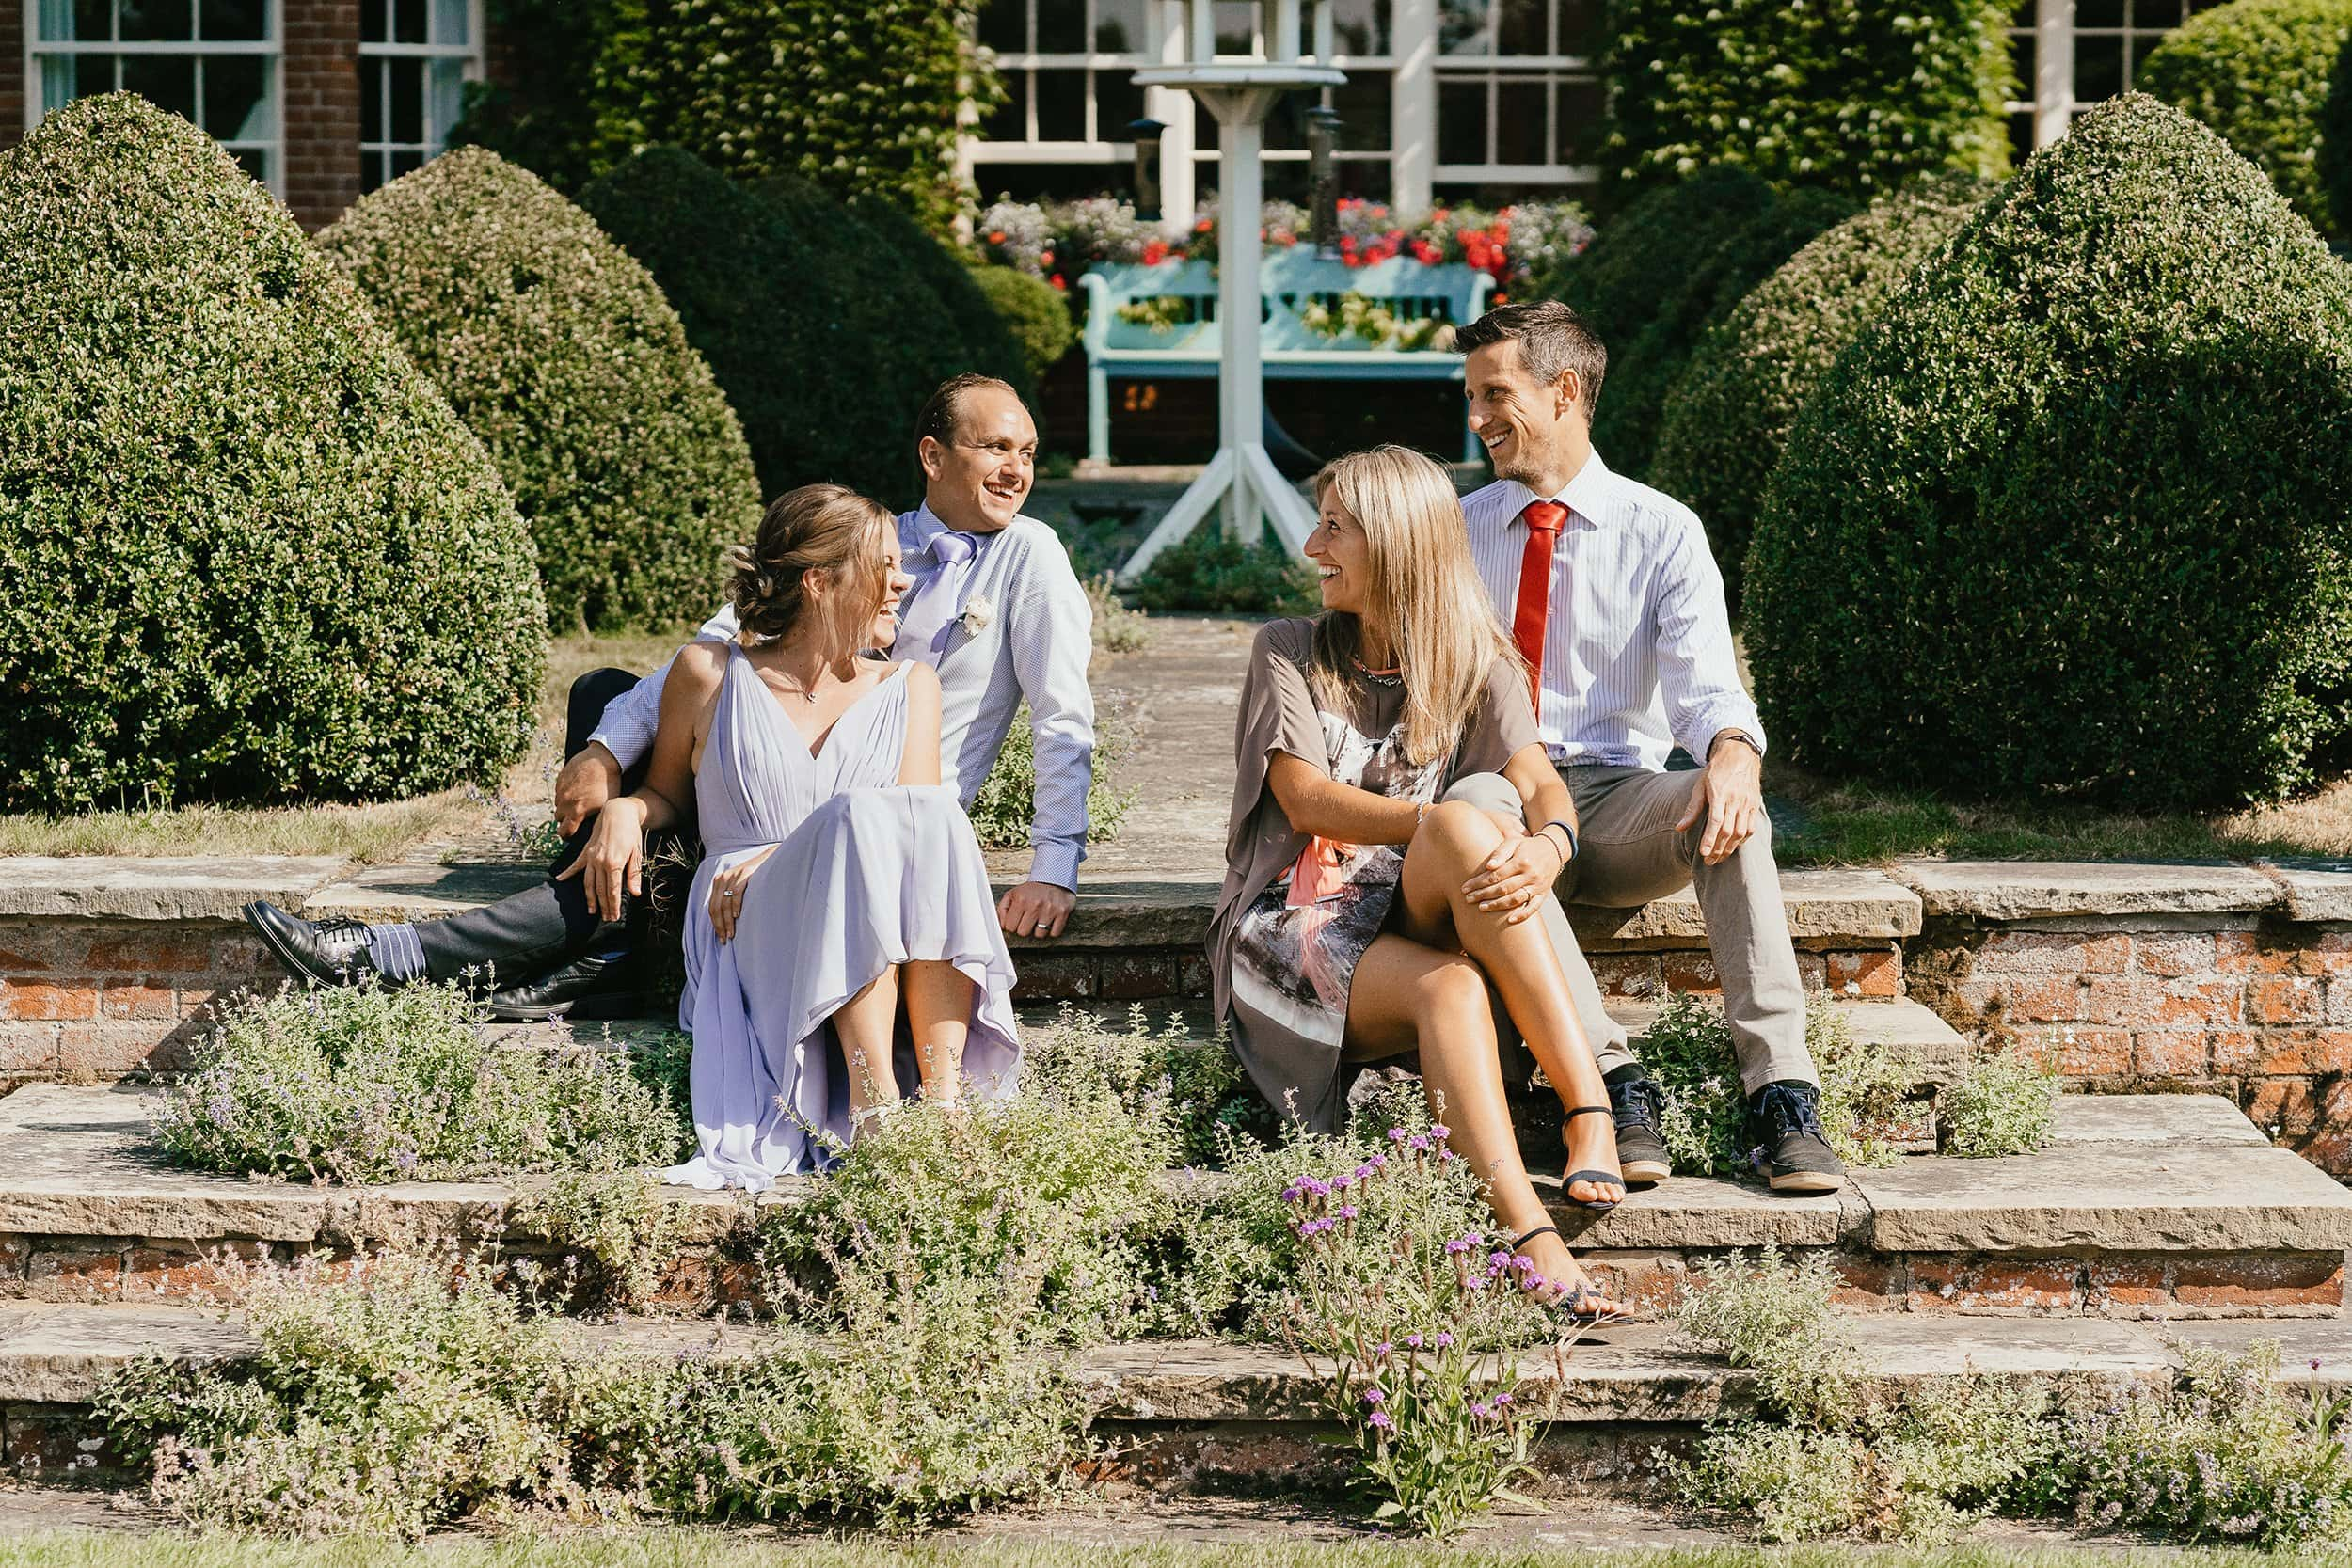 Micro wedding with four people